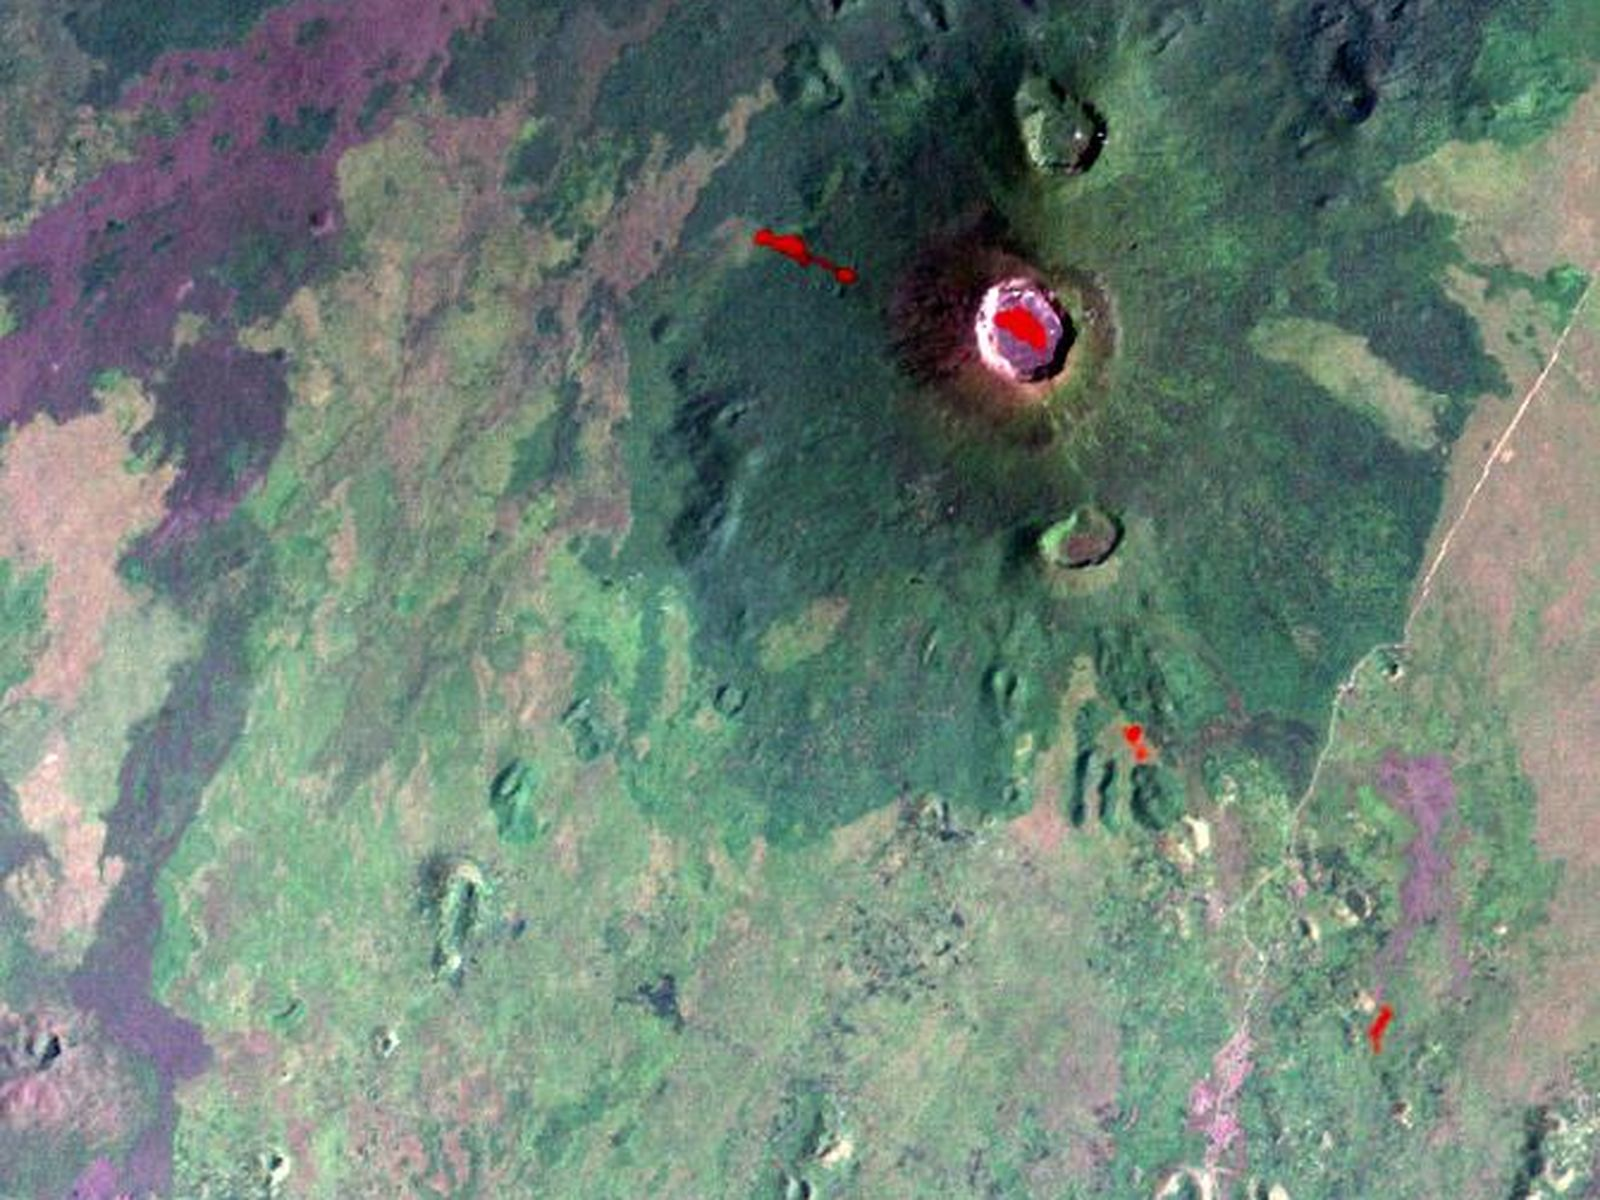 Space Images Nyiragongo Volcano Congo Map View with Lava 1600x1200